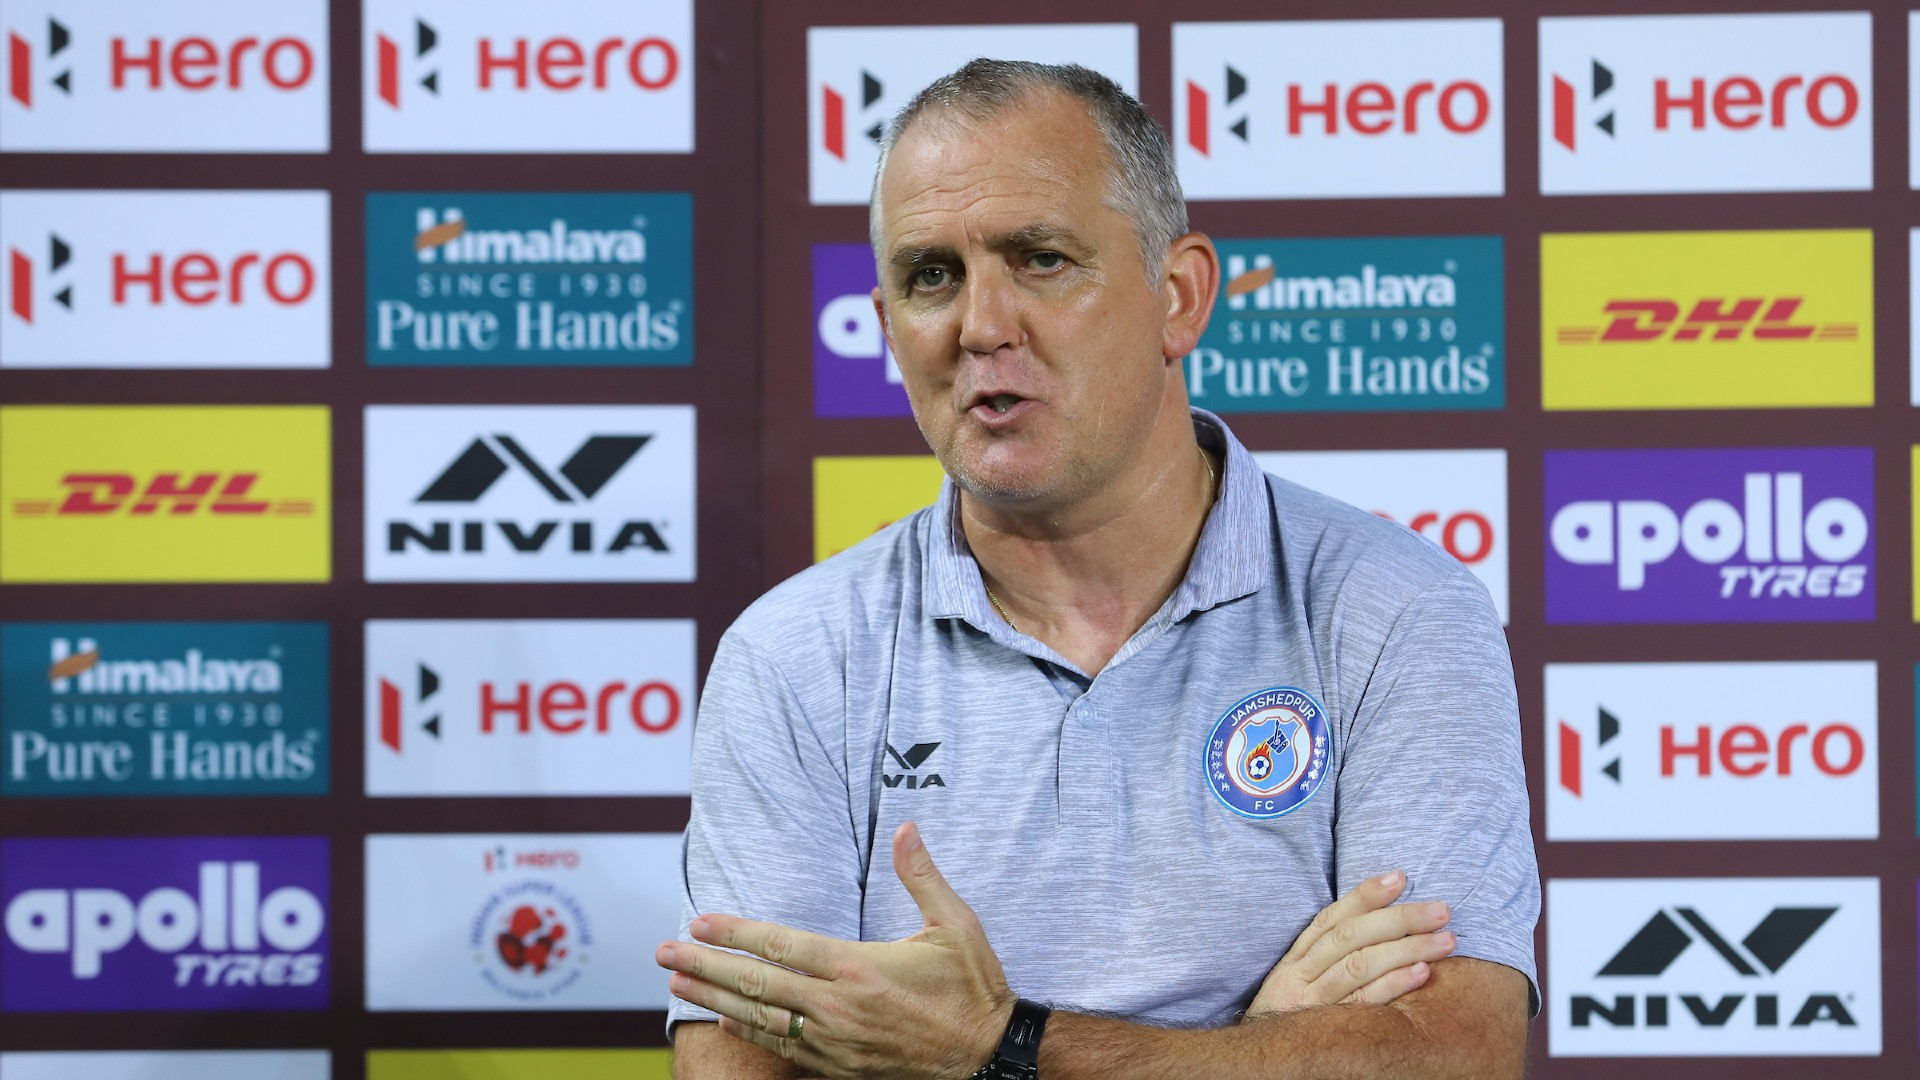 Owen Coyle after disallowed goal against Hyderabad FC - Jamshedpur FC were robbed!